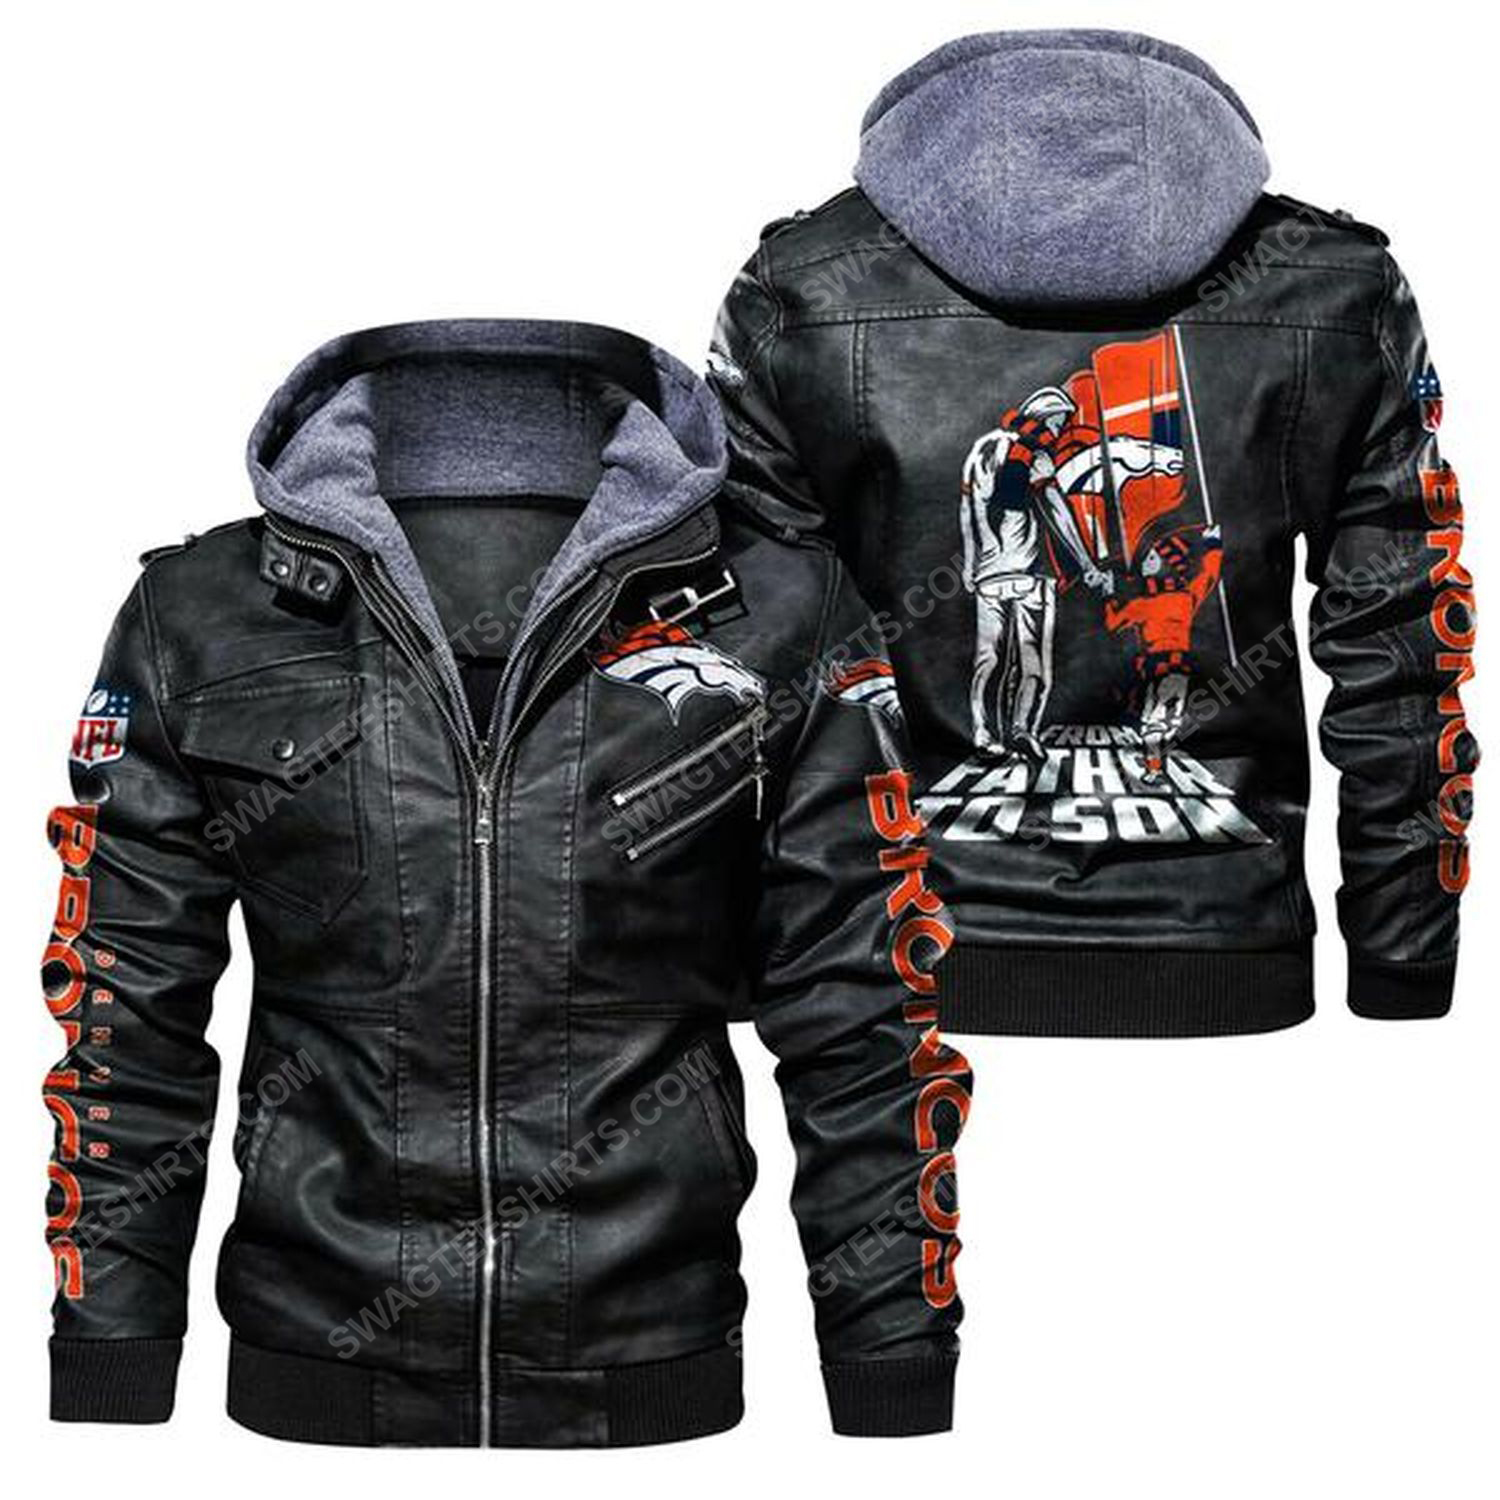 National football league denver broncos from father to son leather jacket - back